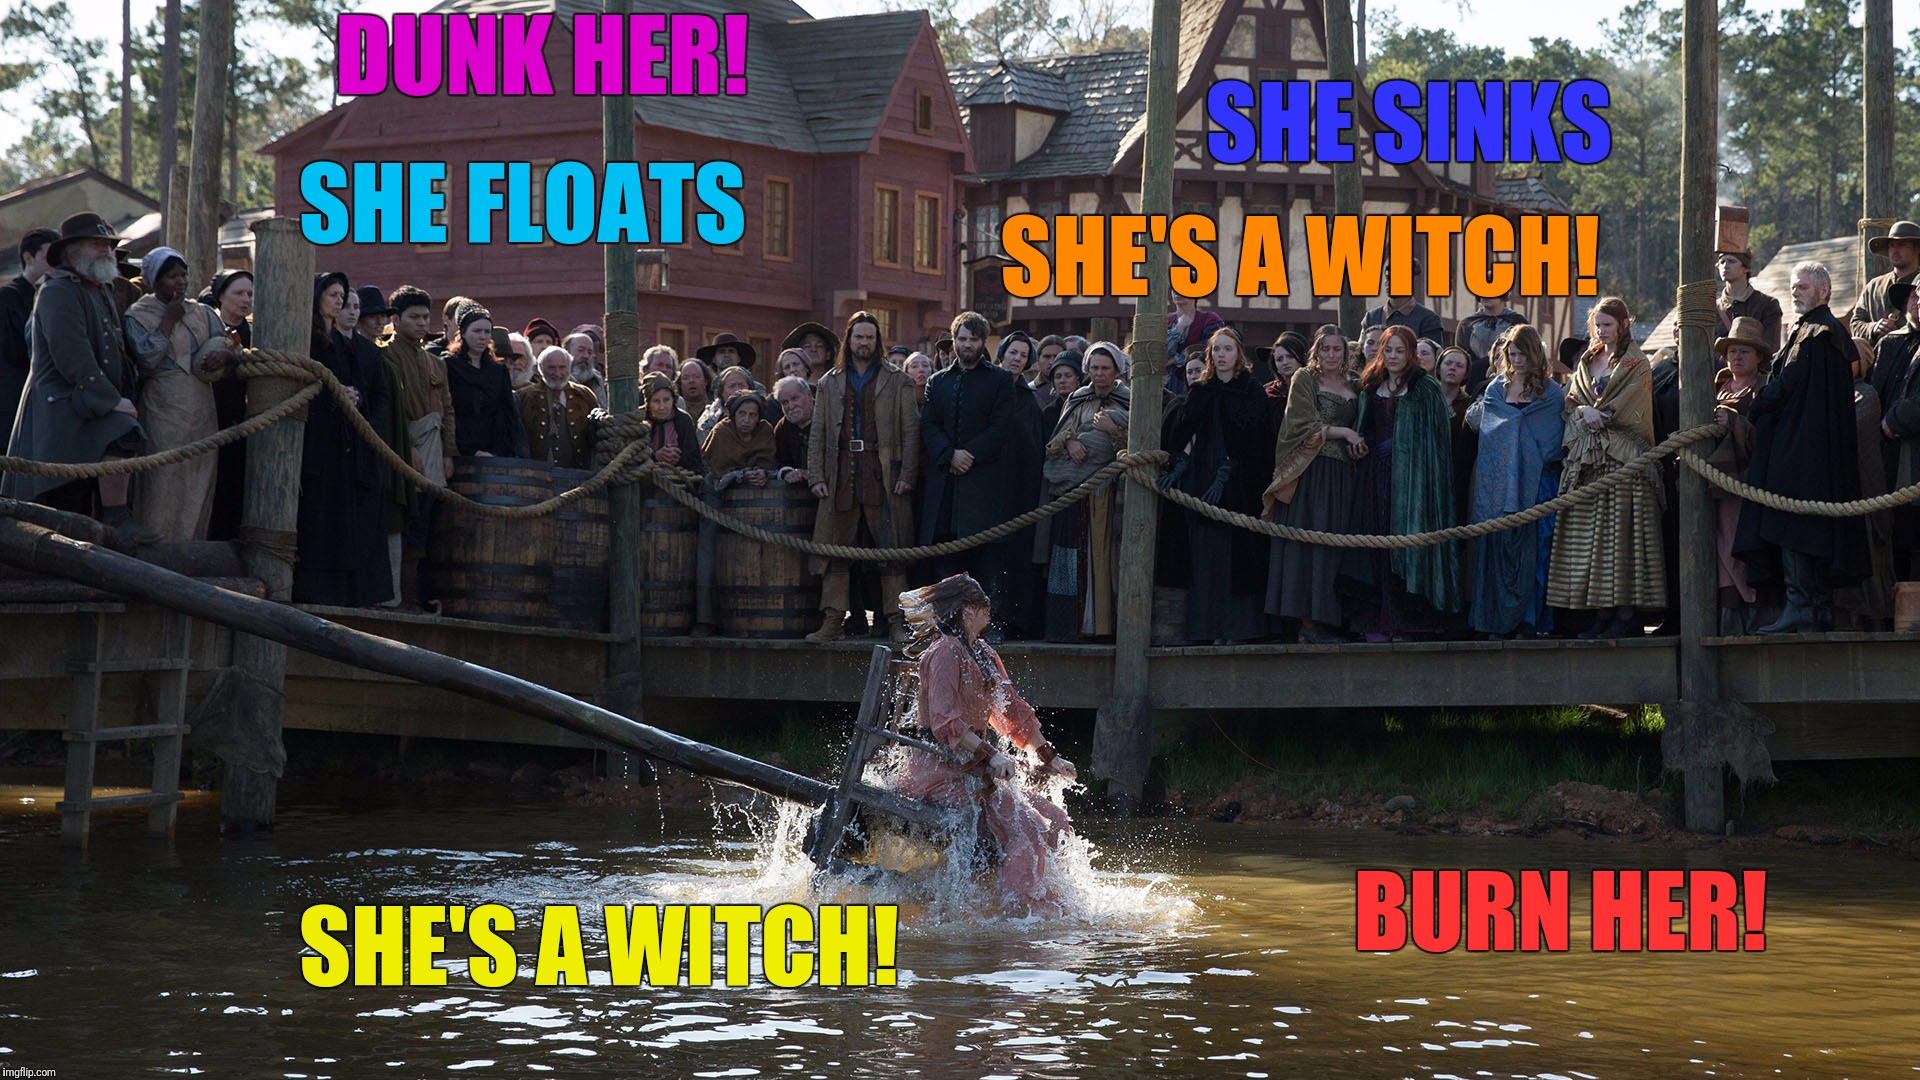 SHE FLOATS BURN HER! SHE'S A WITCH! DUNK HER! SHE SINKS SHE'S A WITCH! | made w/ Imgflip meme maker